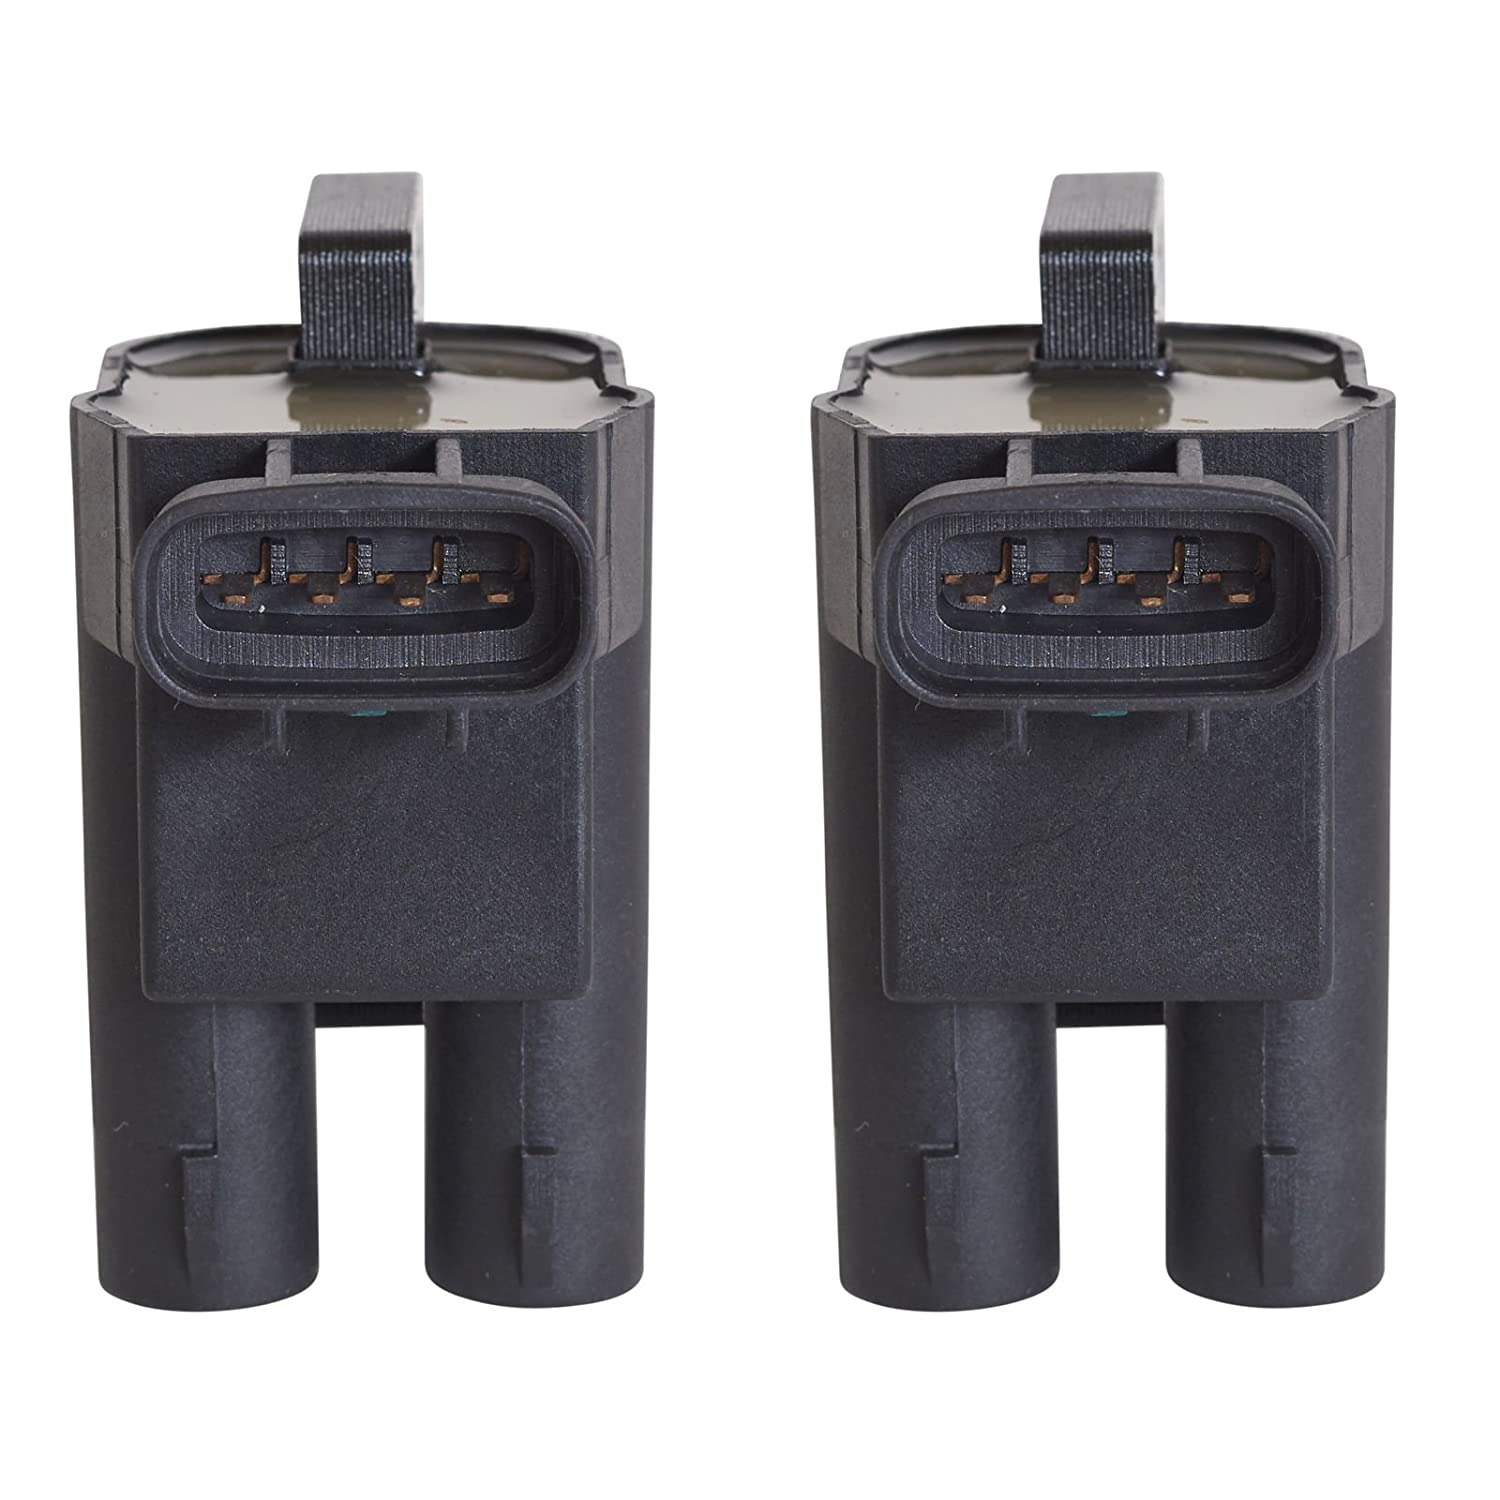 2 pc Ignition Coil Set 1997-2001 Toyota Camry Rav4 Solara Fits UF180 / UF-180 Parts Galaxy